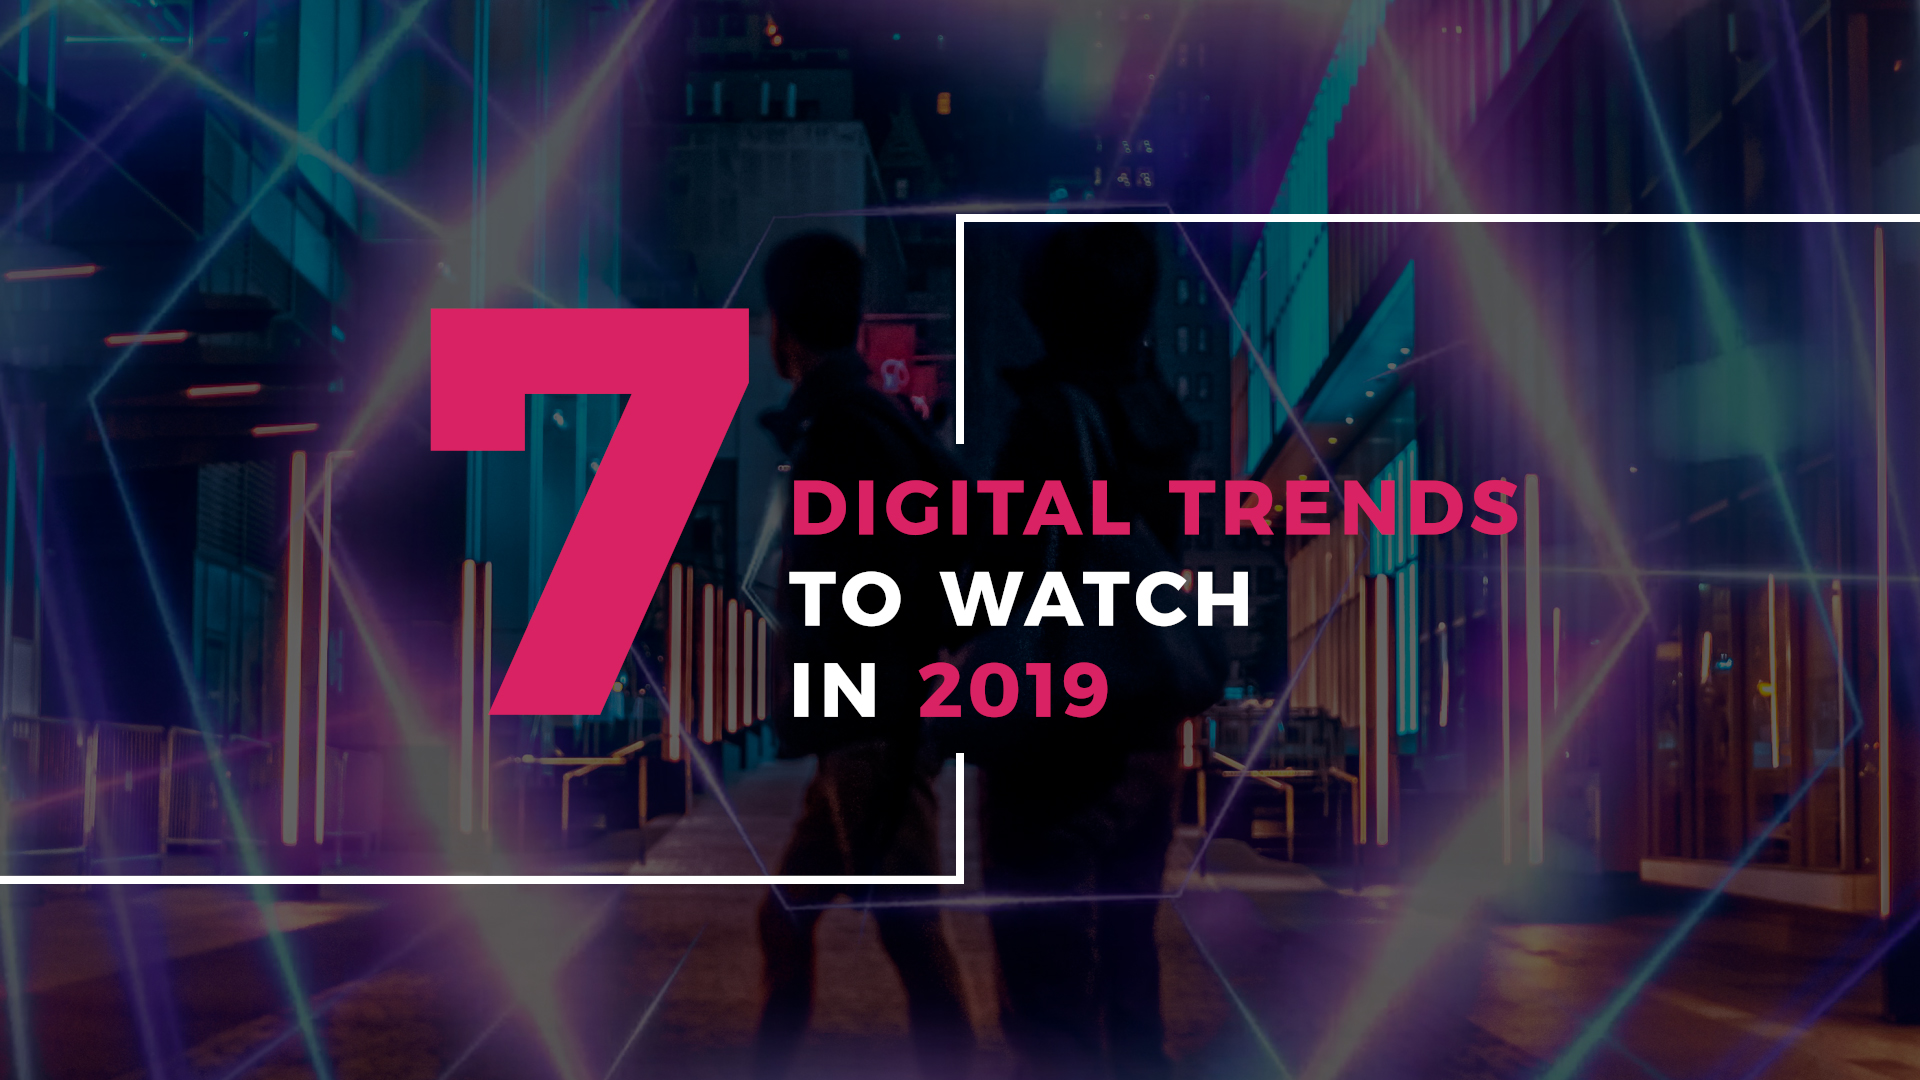 2019 digital trends